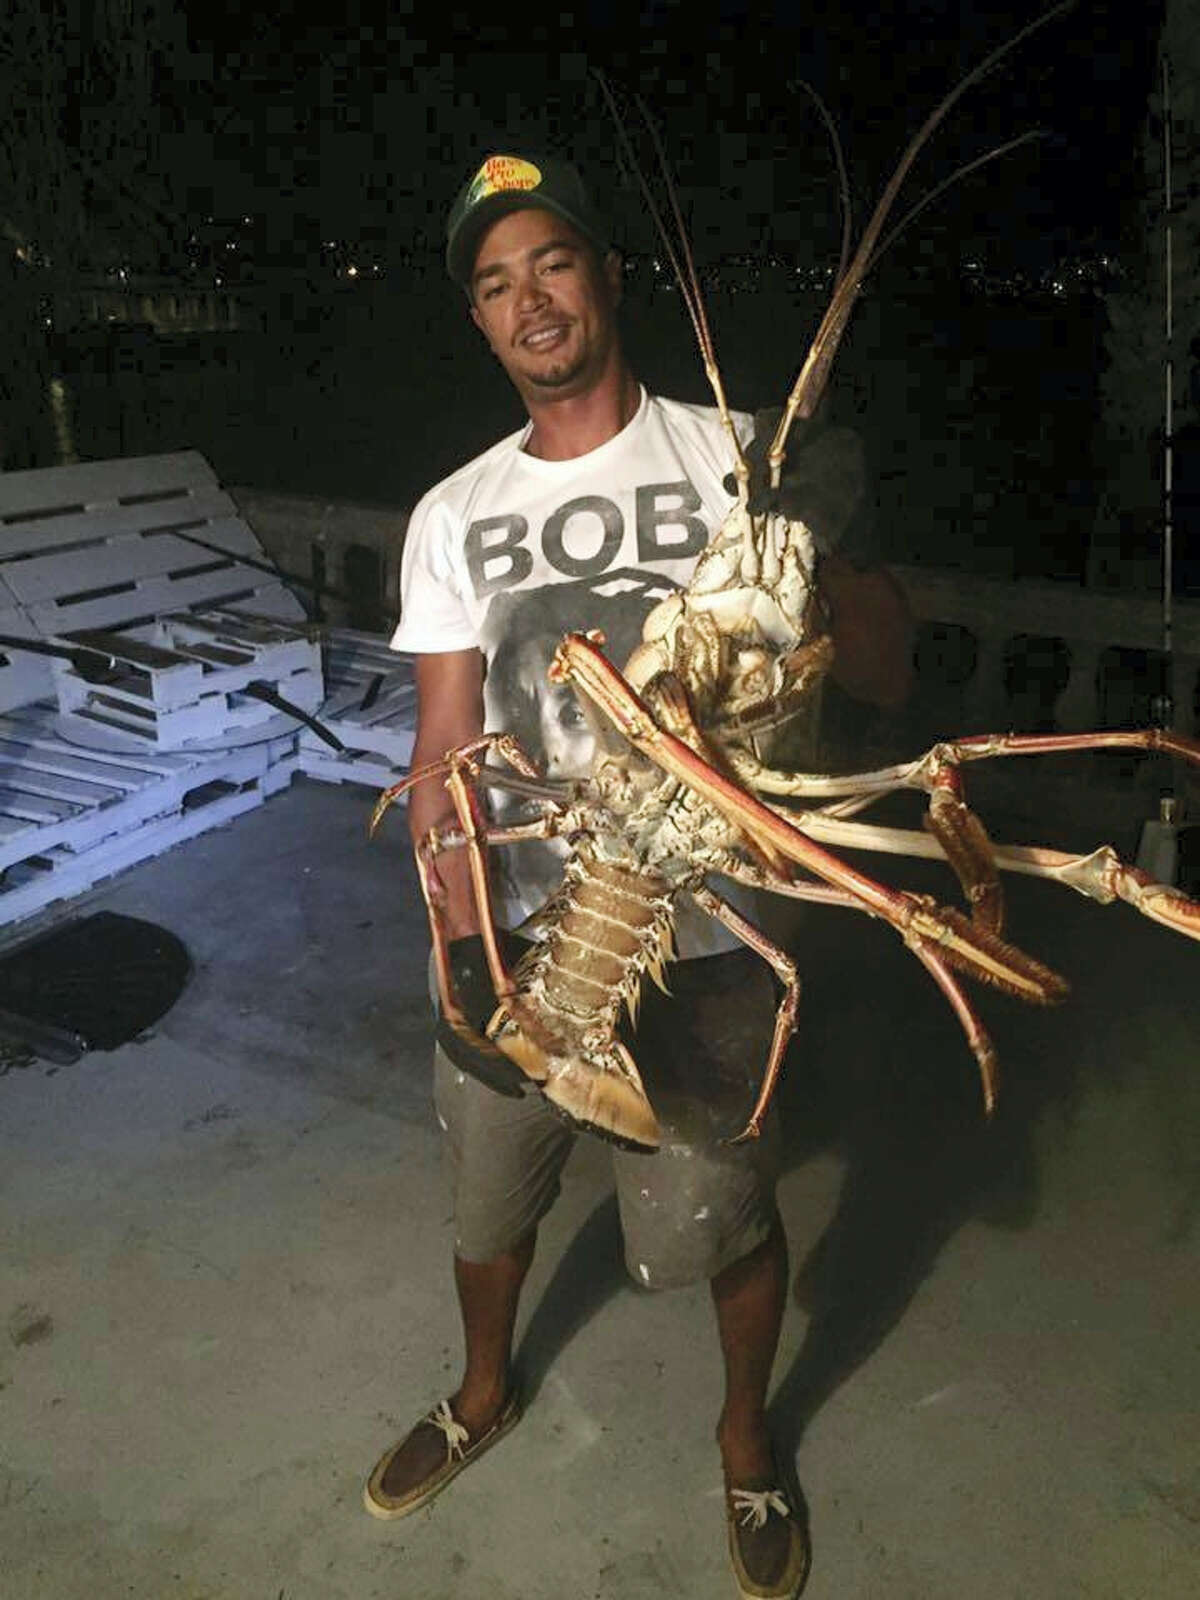 In this photo provided by charter boat company Sanctuary Marine Bermuda, Tristan Loescher holds up a 14-pound spiny lobster he caught while fishing on Oct. 14, 2016, at an undisclosed shoreline location in Bermuda.